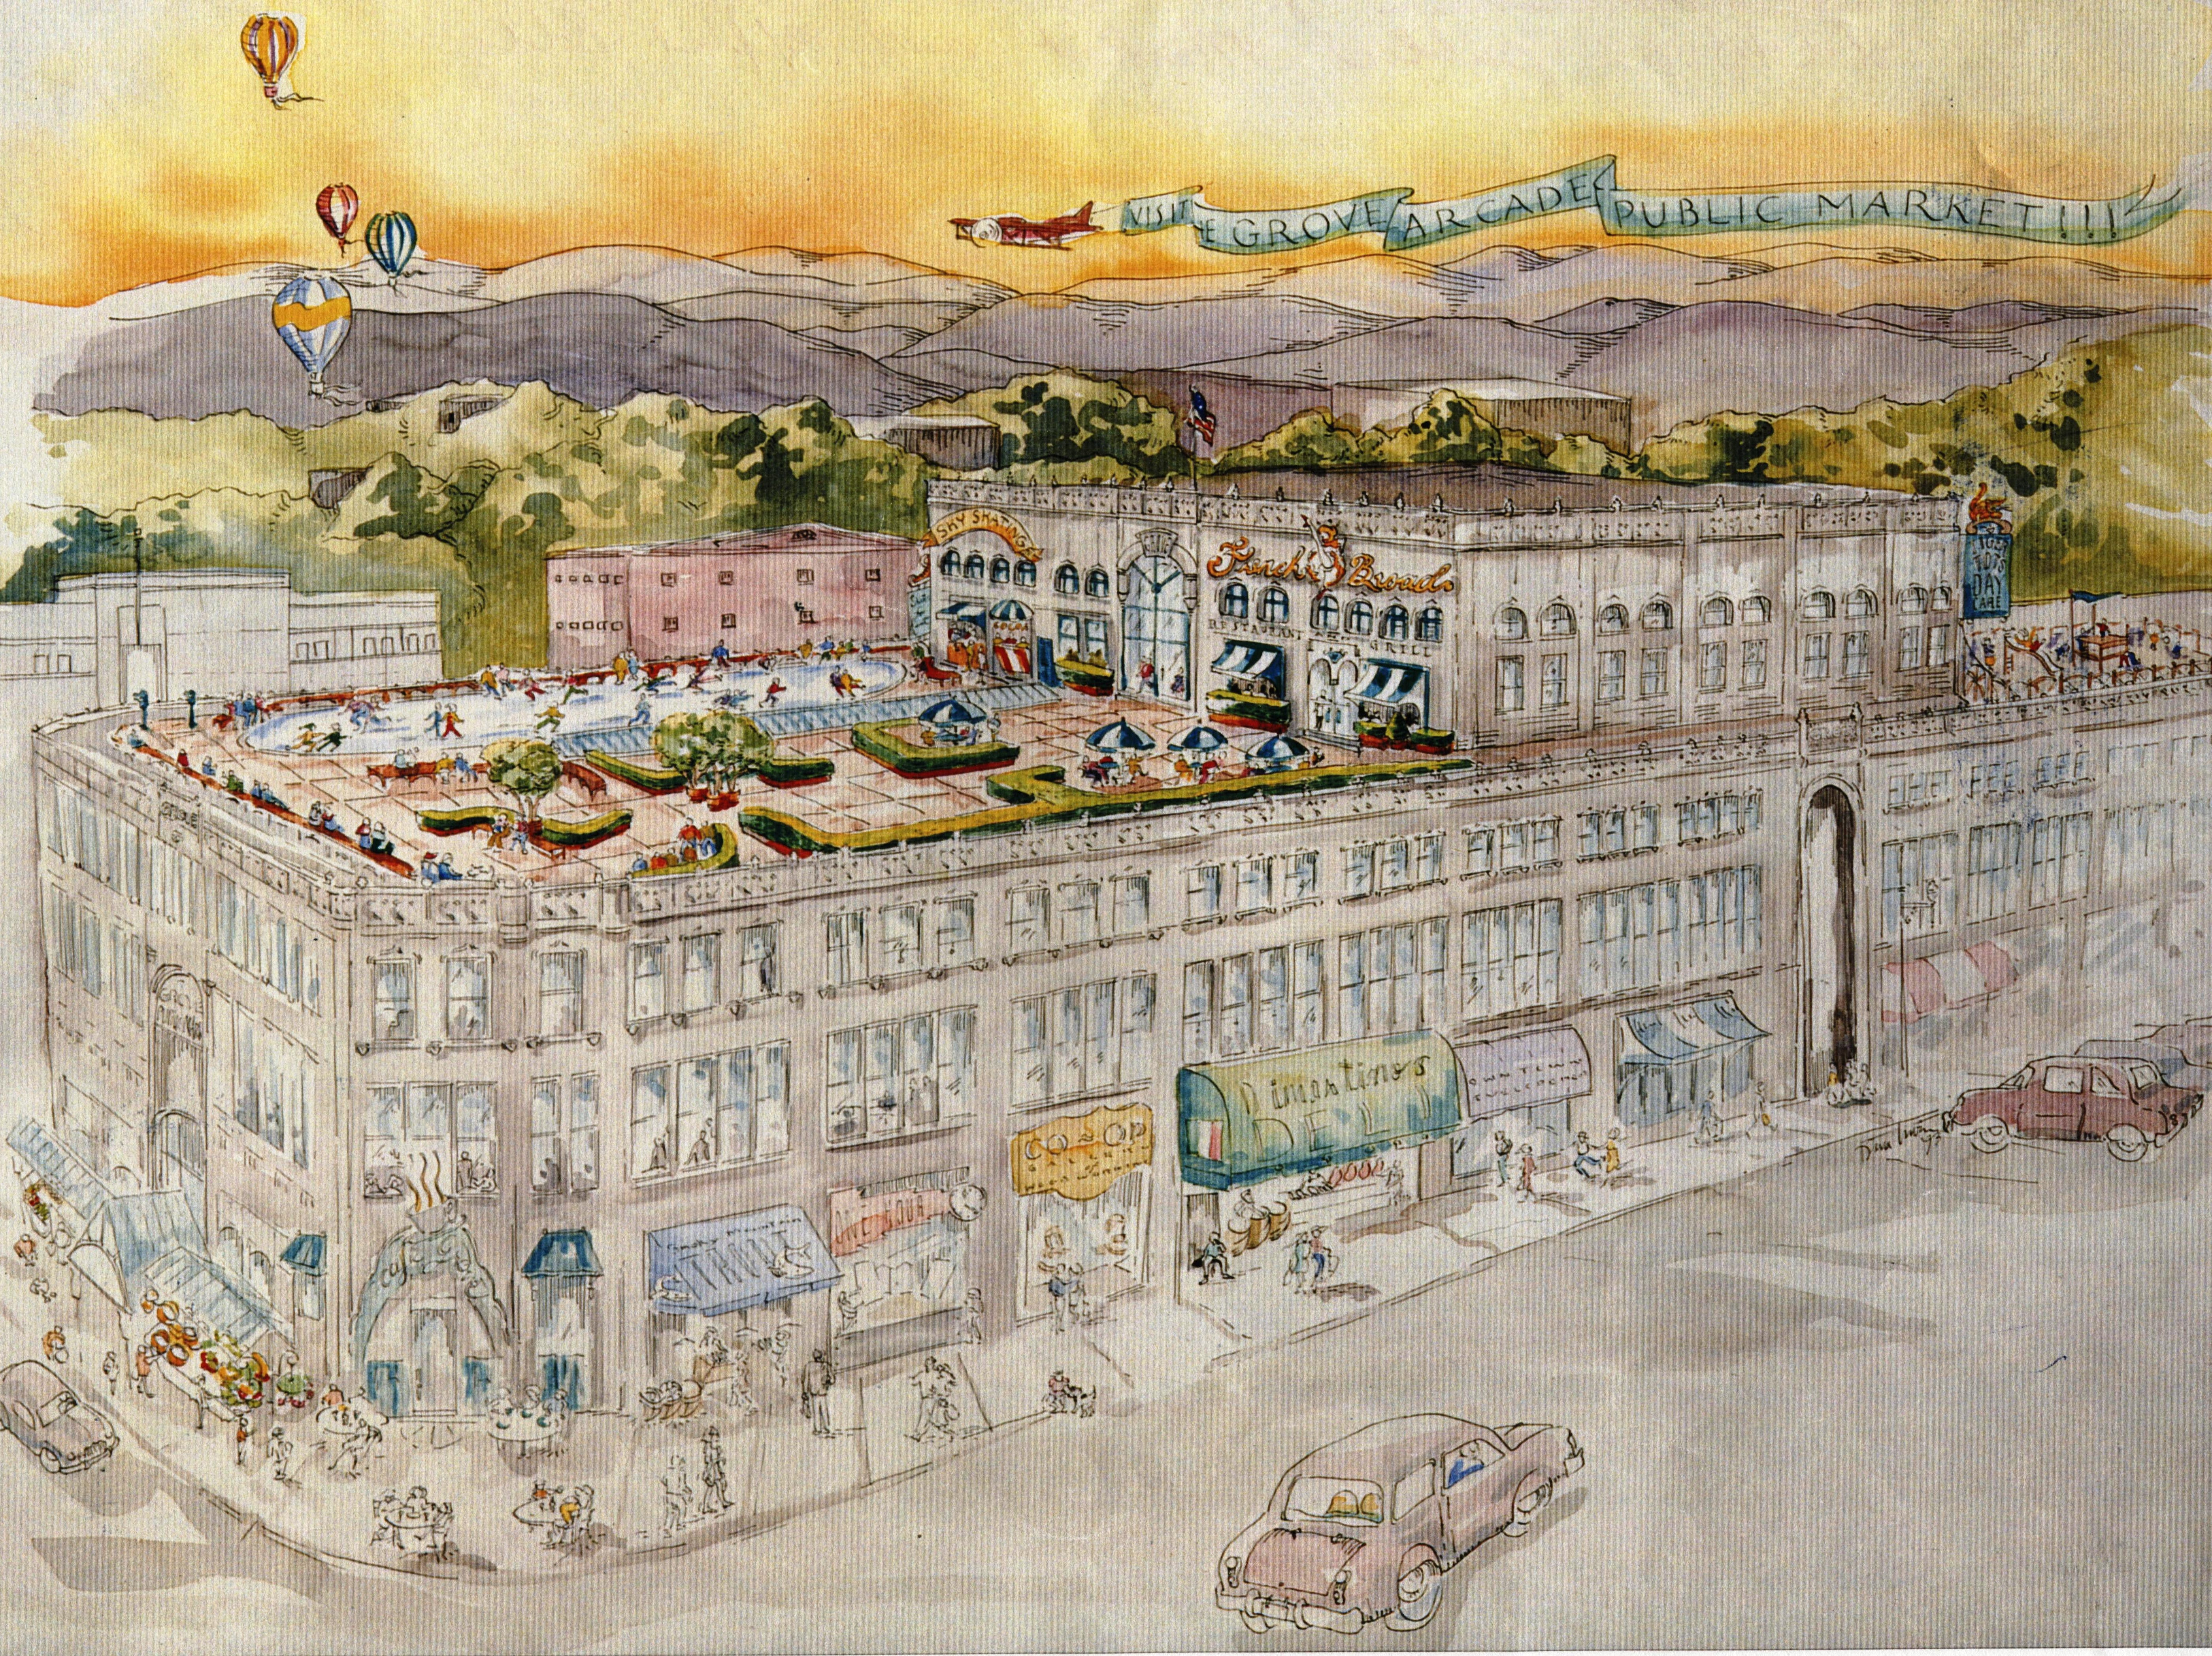 This rendering by Dana Irwin from 1995 shows what the Grove Arcade could look like after redevelopment into a public market and office building.